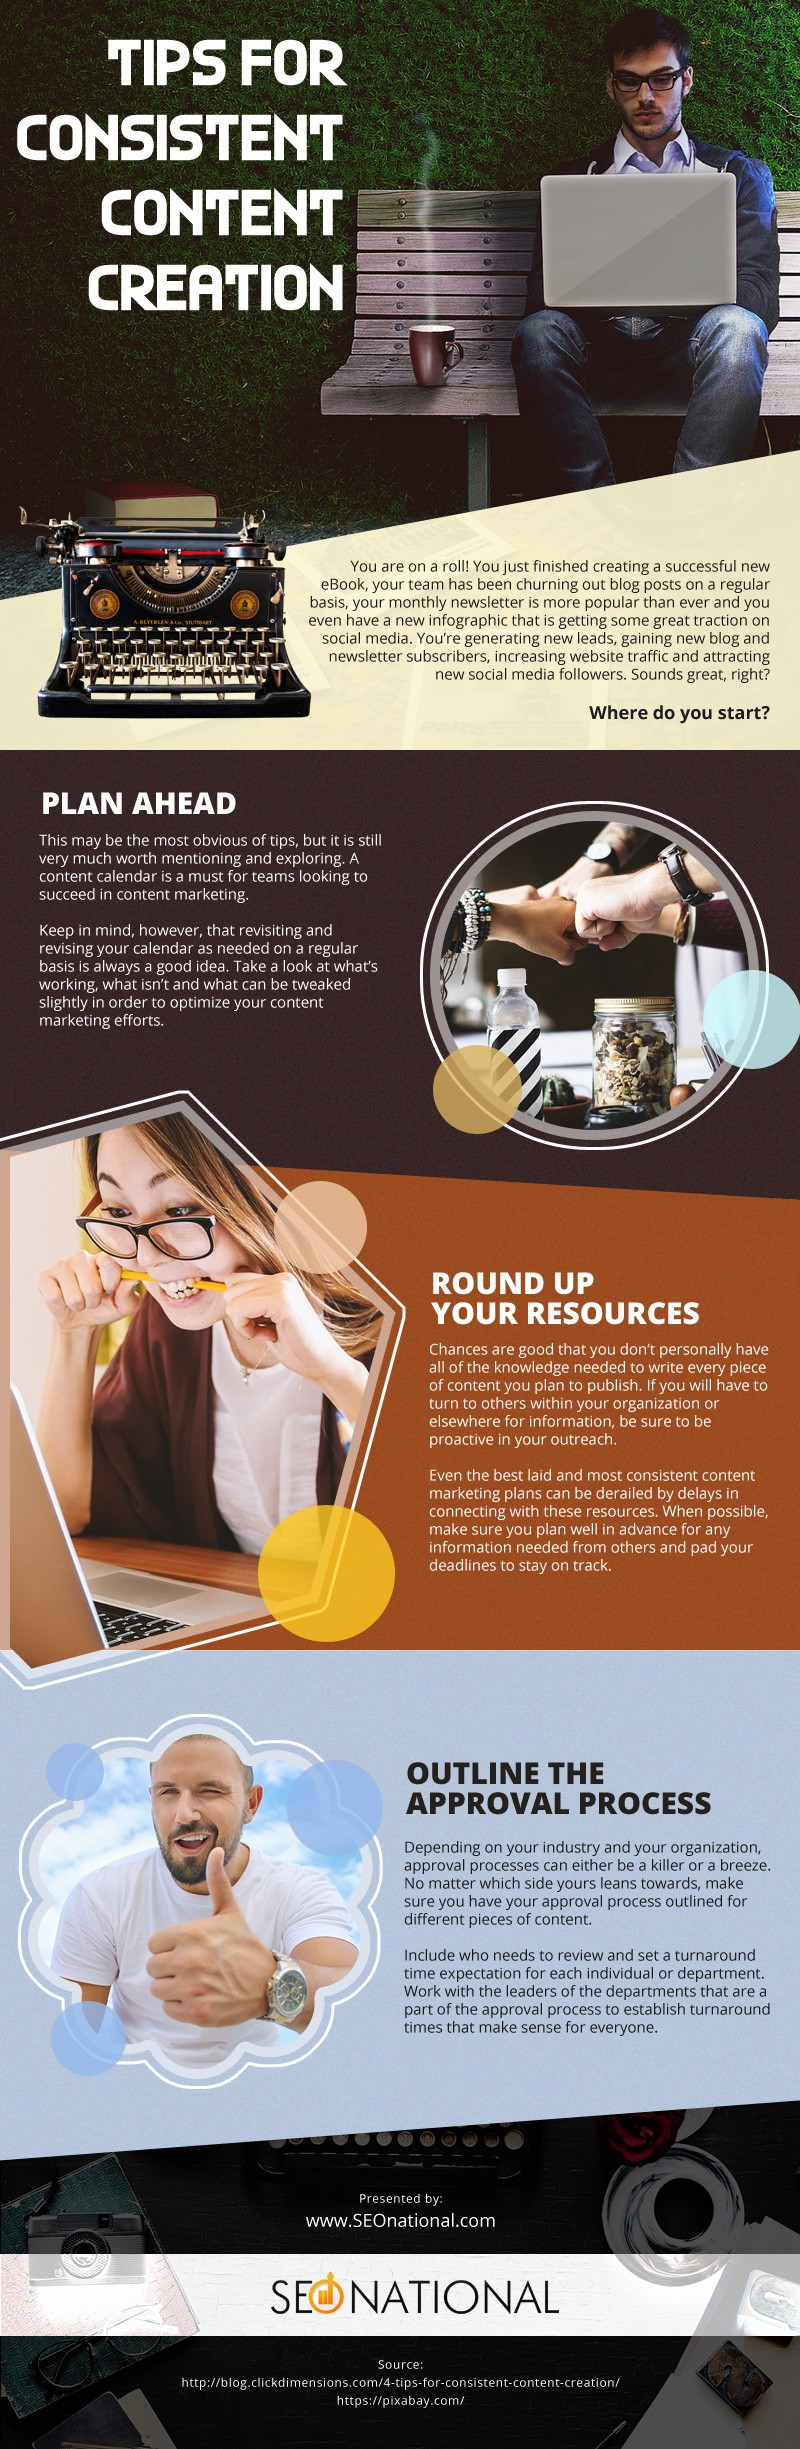 Tips for Consistent Content Creation [infographic]